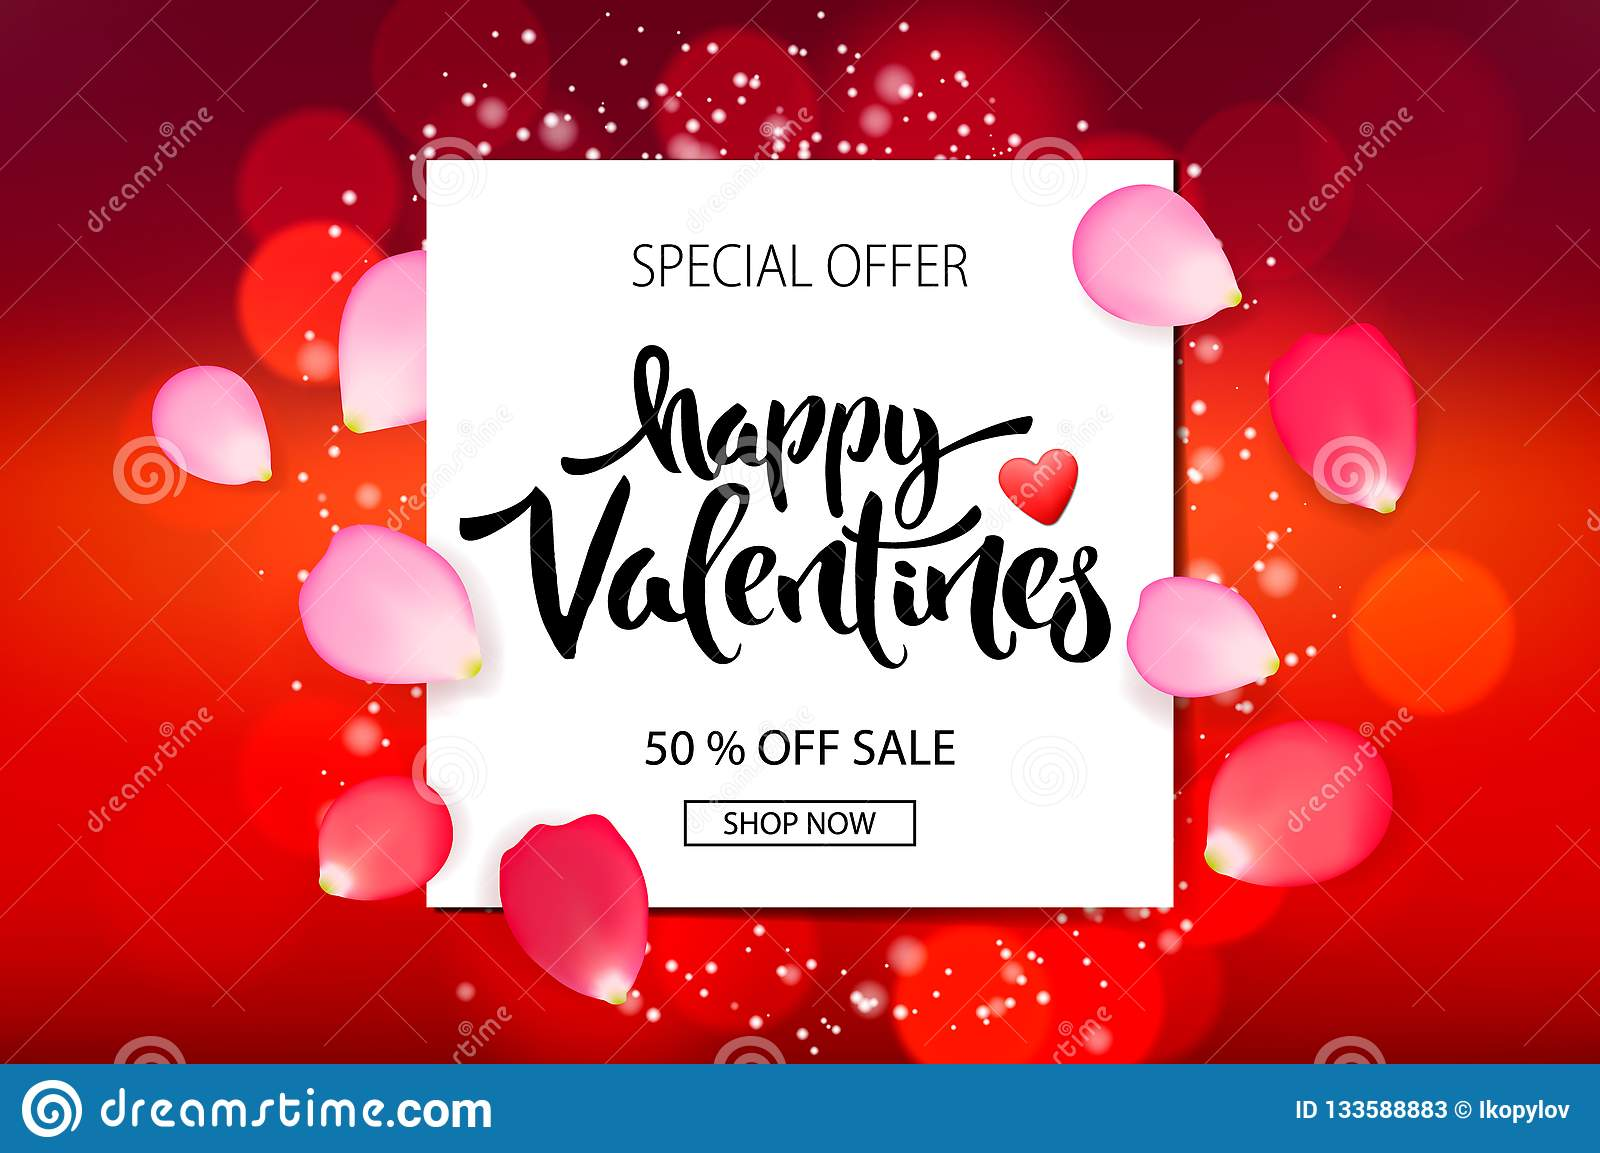 Valentines Day Sale Background With Roses Petals Vector